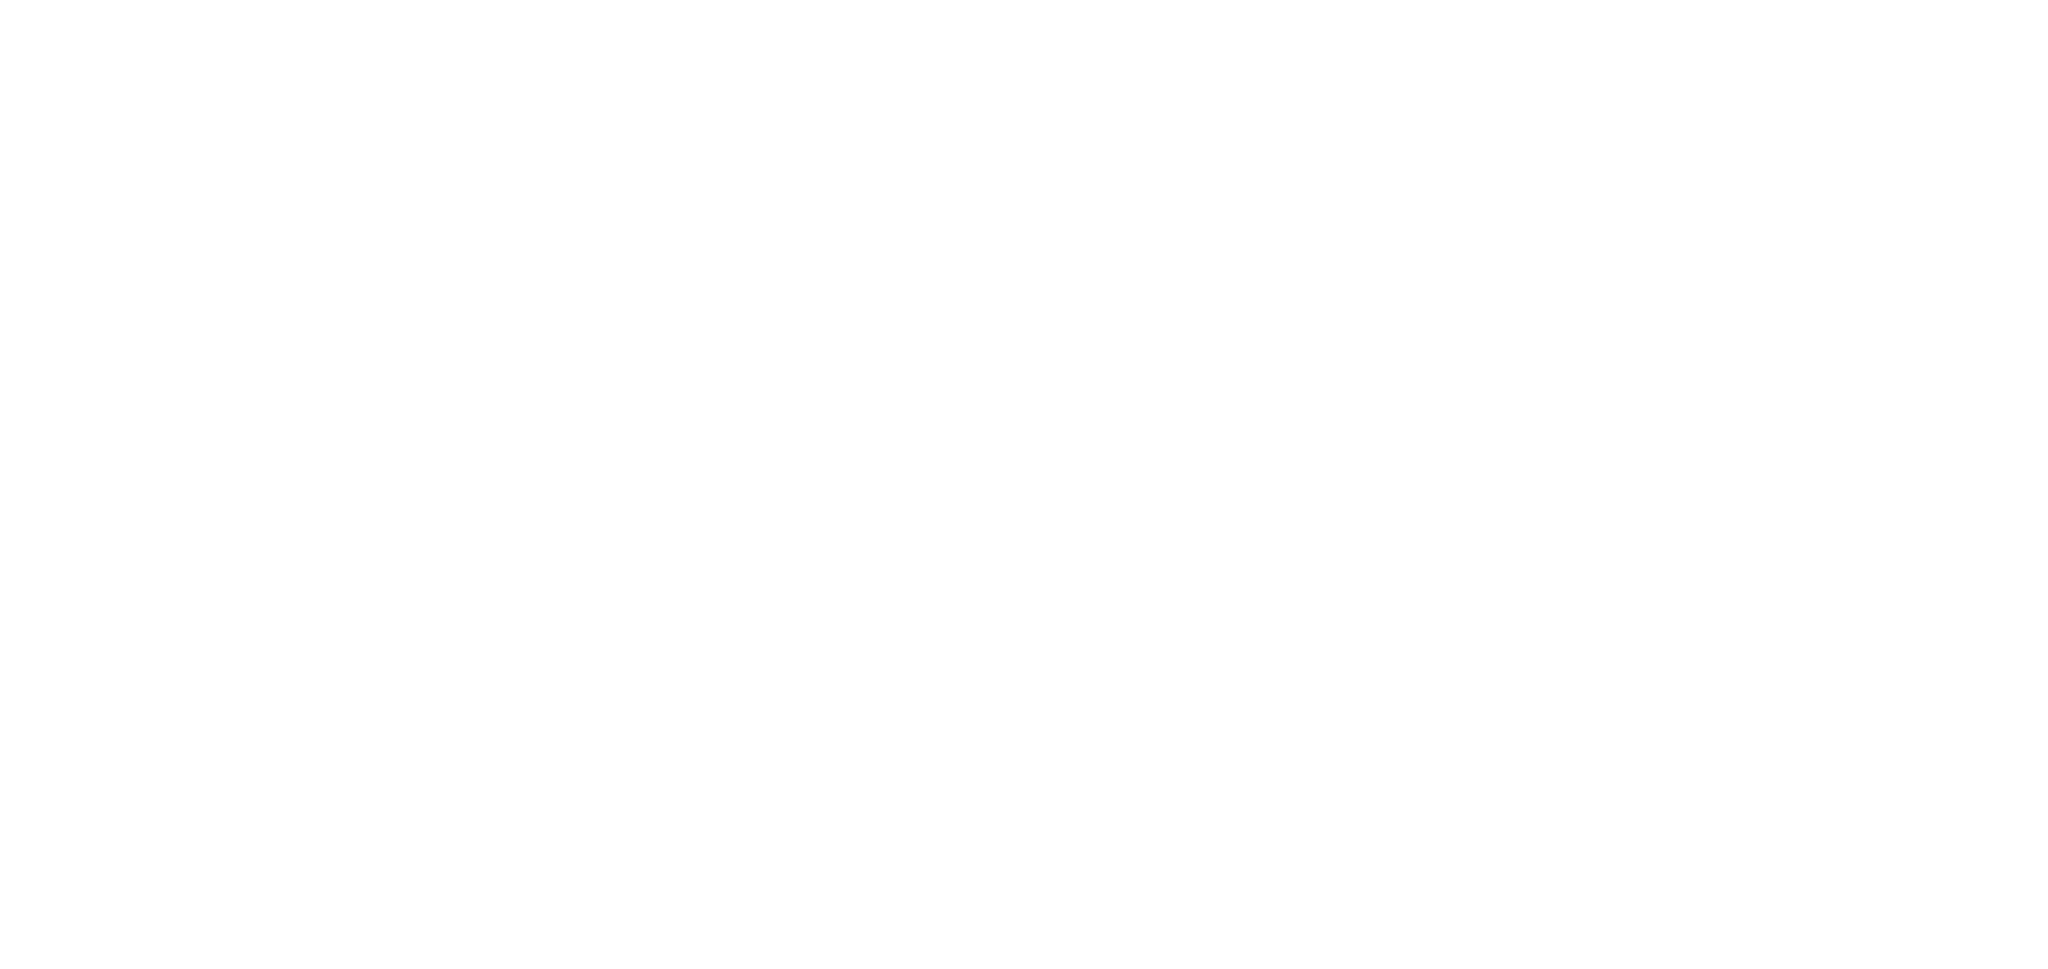 Drone Graffiti Project